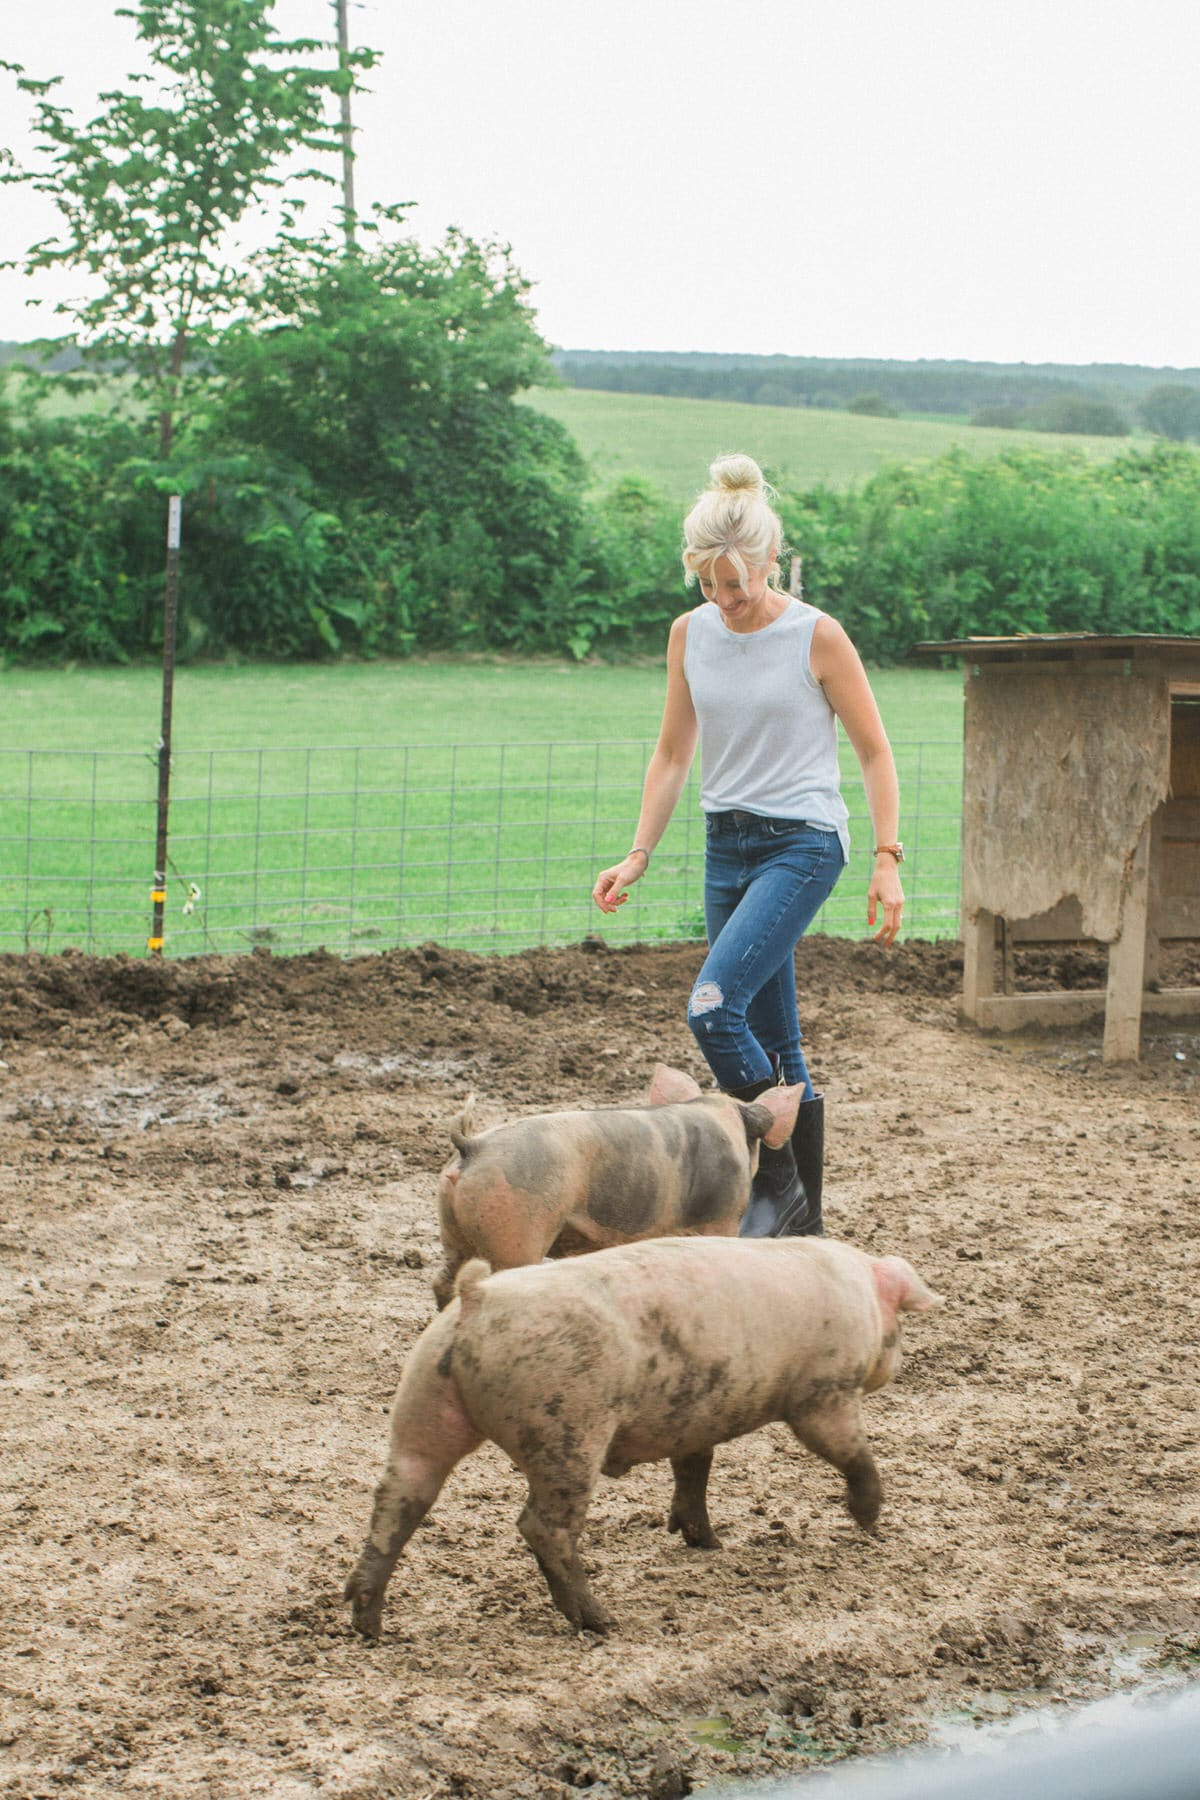 Humanely-raised-hogs-Wisconsin-farm-fine-art-photography-by-Studio-L-photographer-Laura-Schneider-_9286